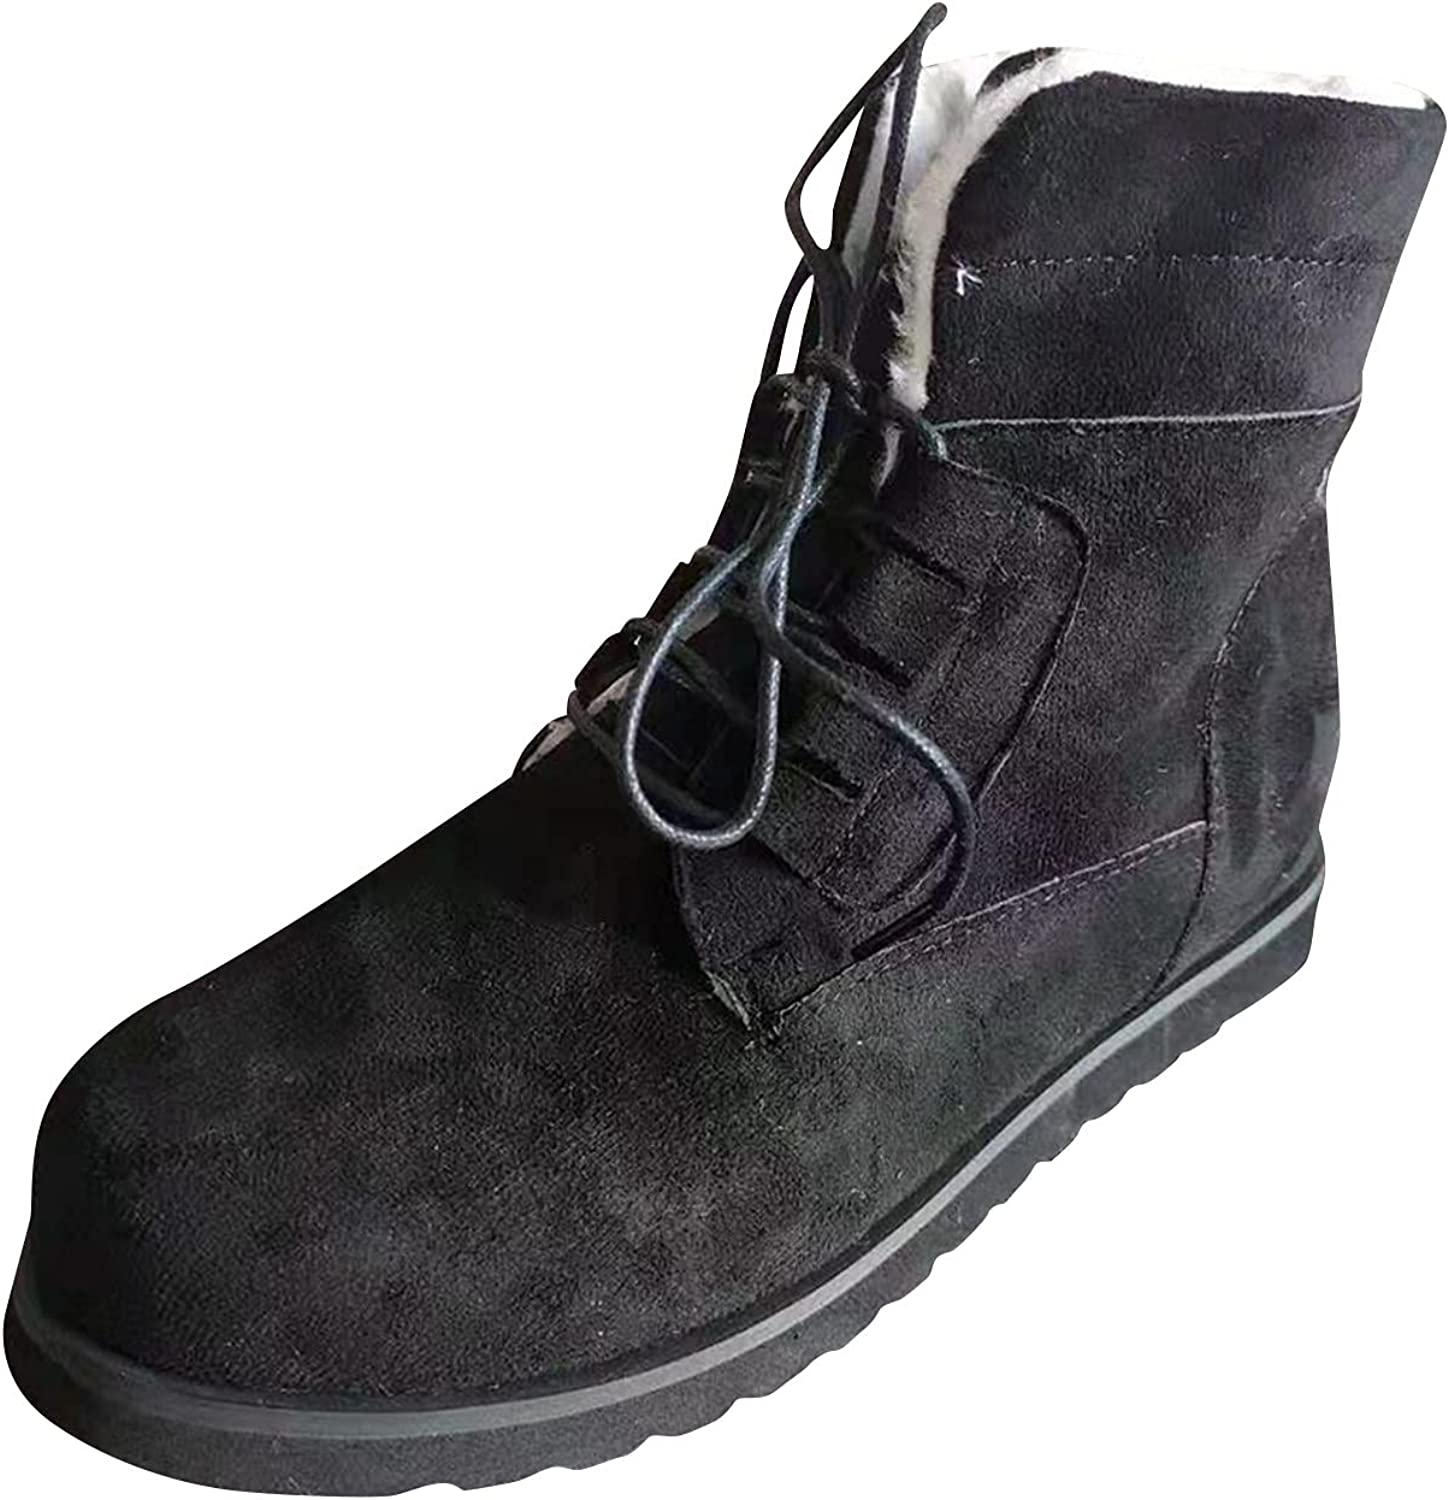 Shije Boots For Large-scale sale Women Winter And Stra Ankle Wholesale Fabric Autumn Cotton